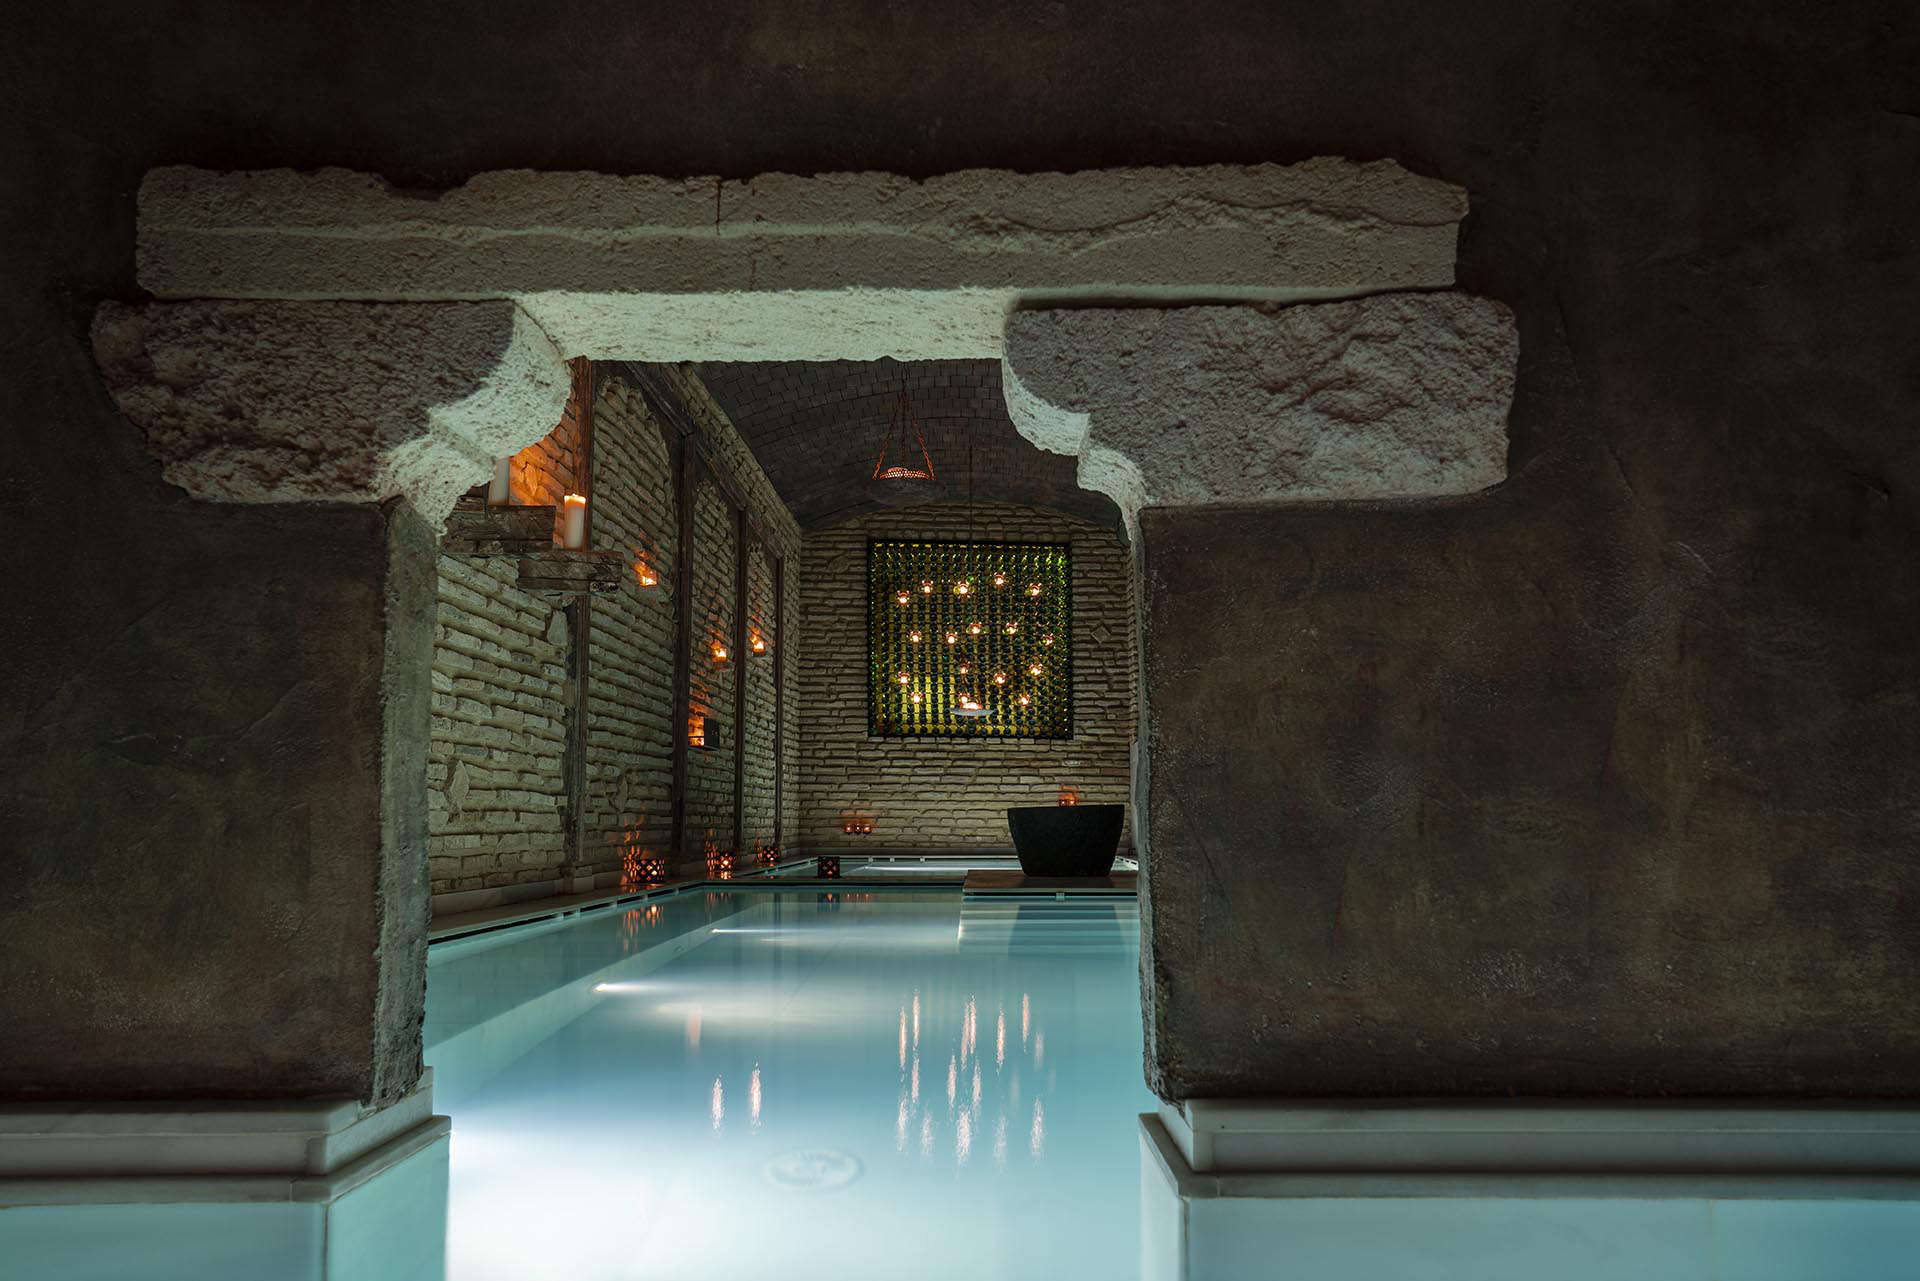 Aire Spa Baths pools with a private area